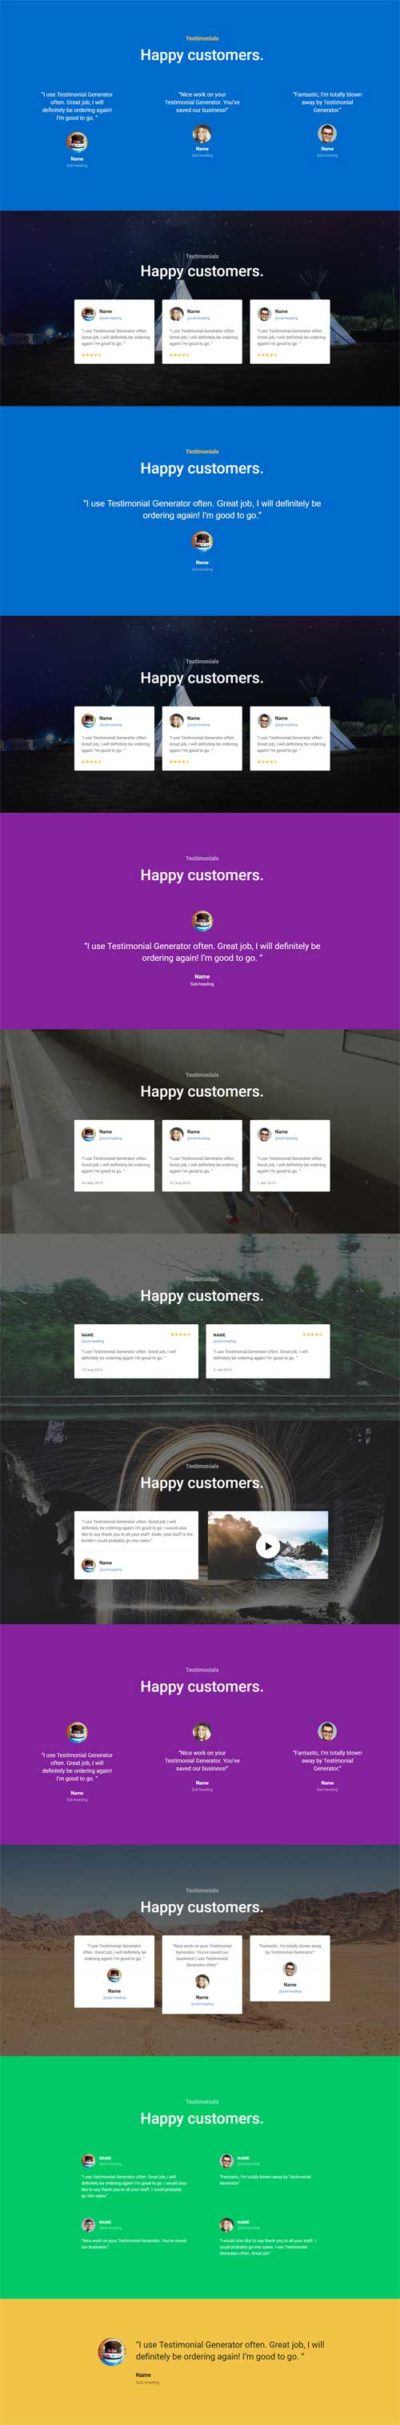 divi testimonial layout pack